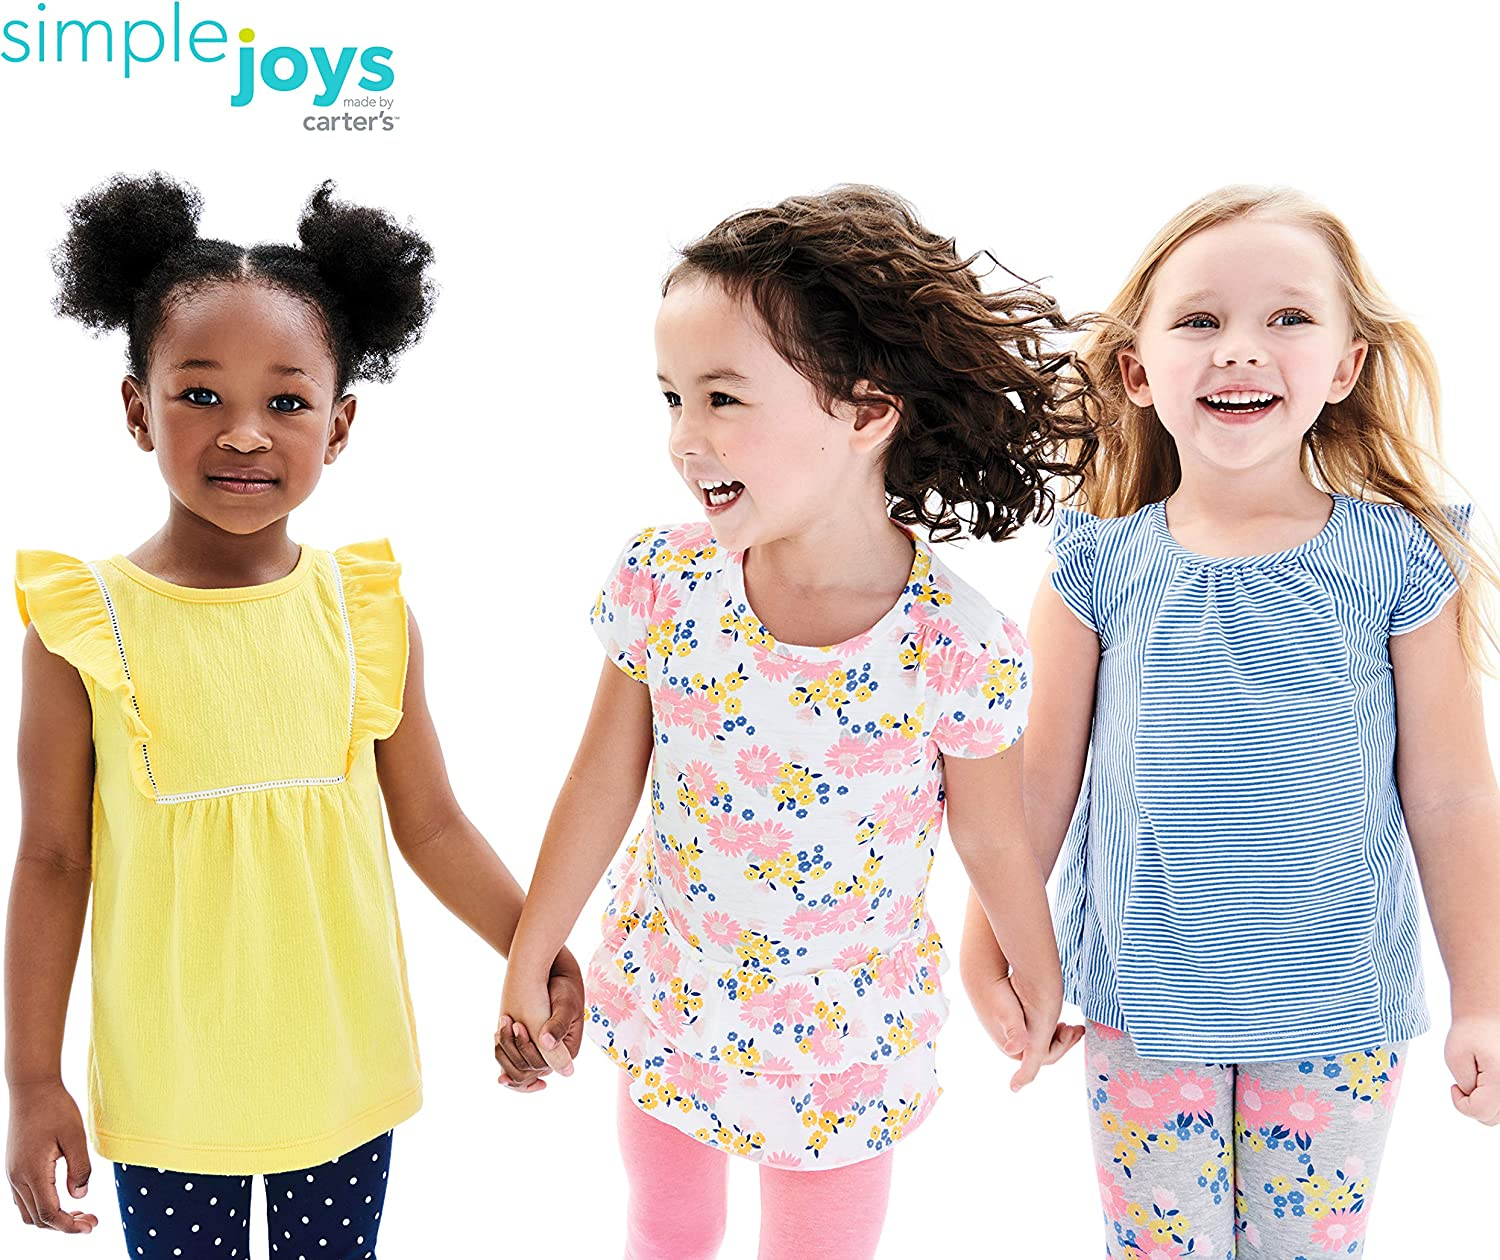 Pack of 3 Simple Joys by Carters Unisex Baby 3-Pack Short-Sleeve Shirts and Tops